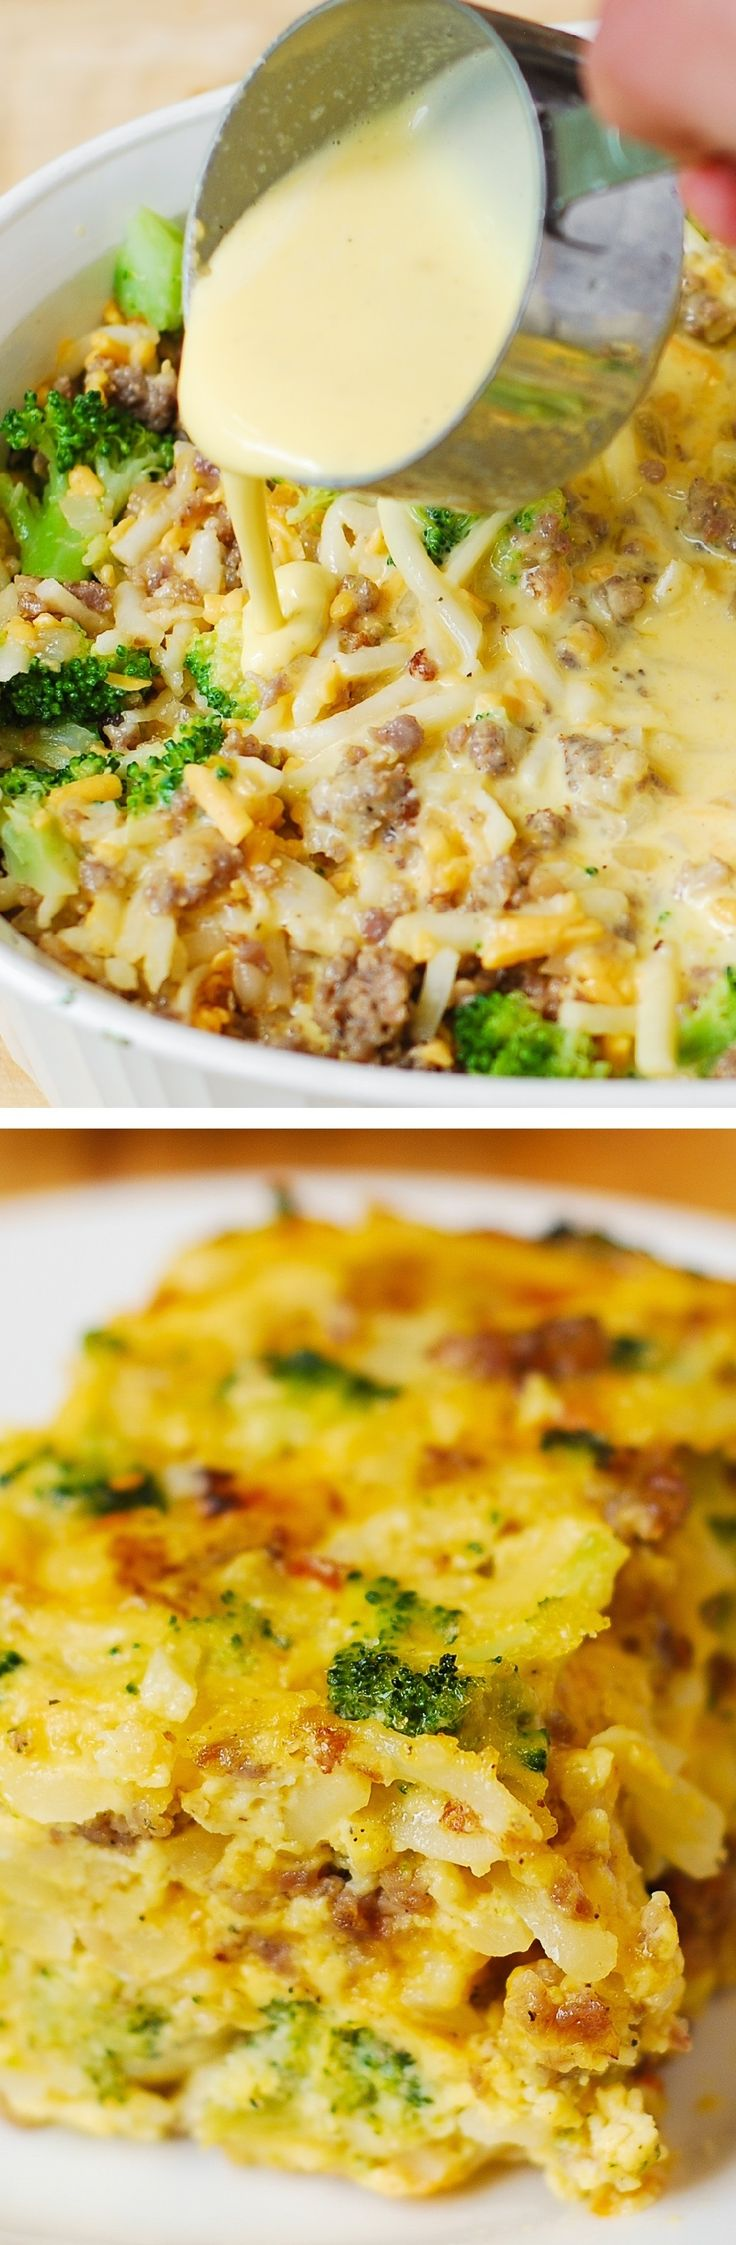 Breakfast Casserole with shredded hash brown potatoes, broccoli, cheddar cheese, sausage and eggs. (Breakfast Bake)